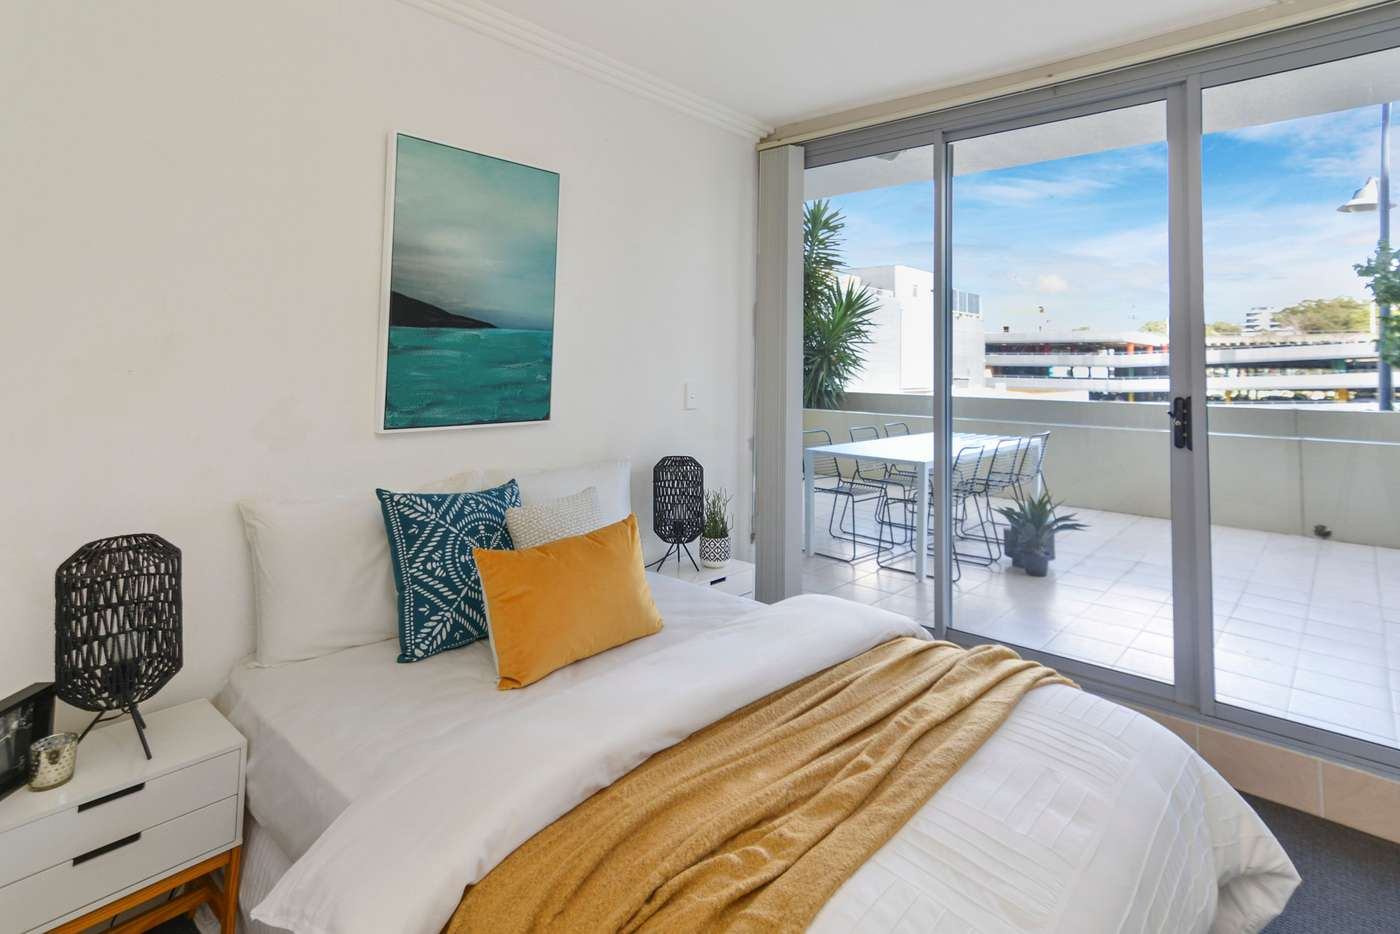 Fifth view of Homely apartment listing, 8/12 Baker Street, Gosford NSW 2250